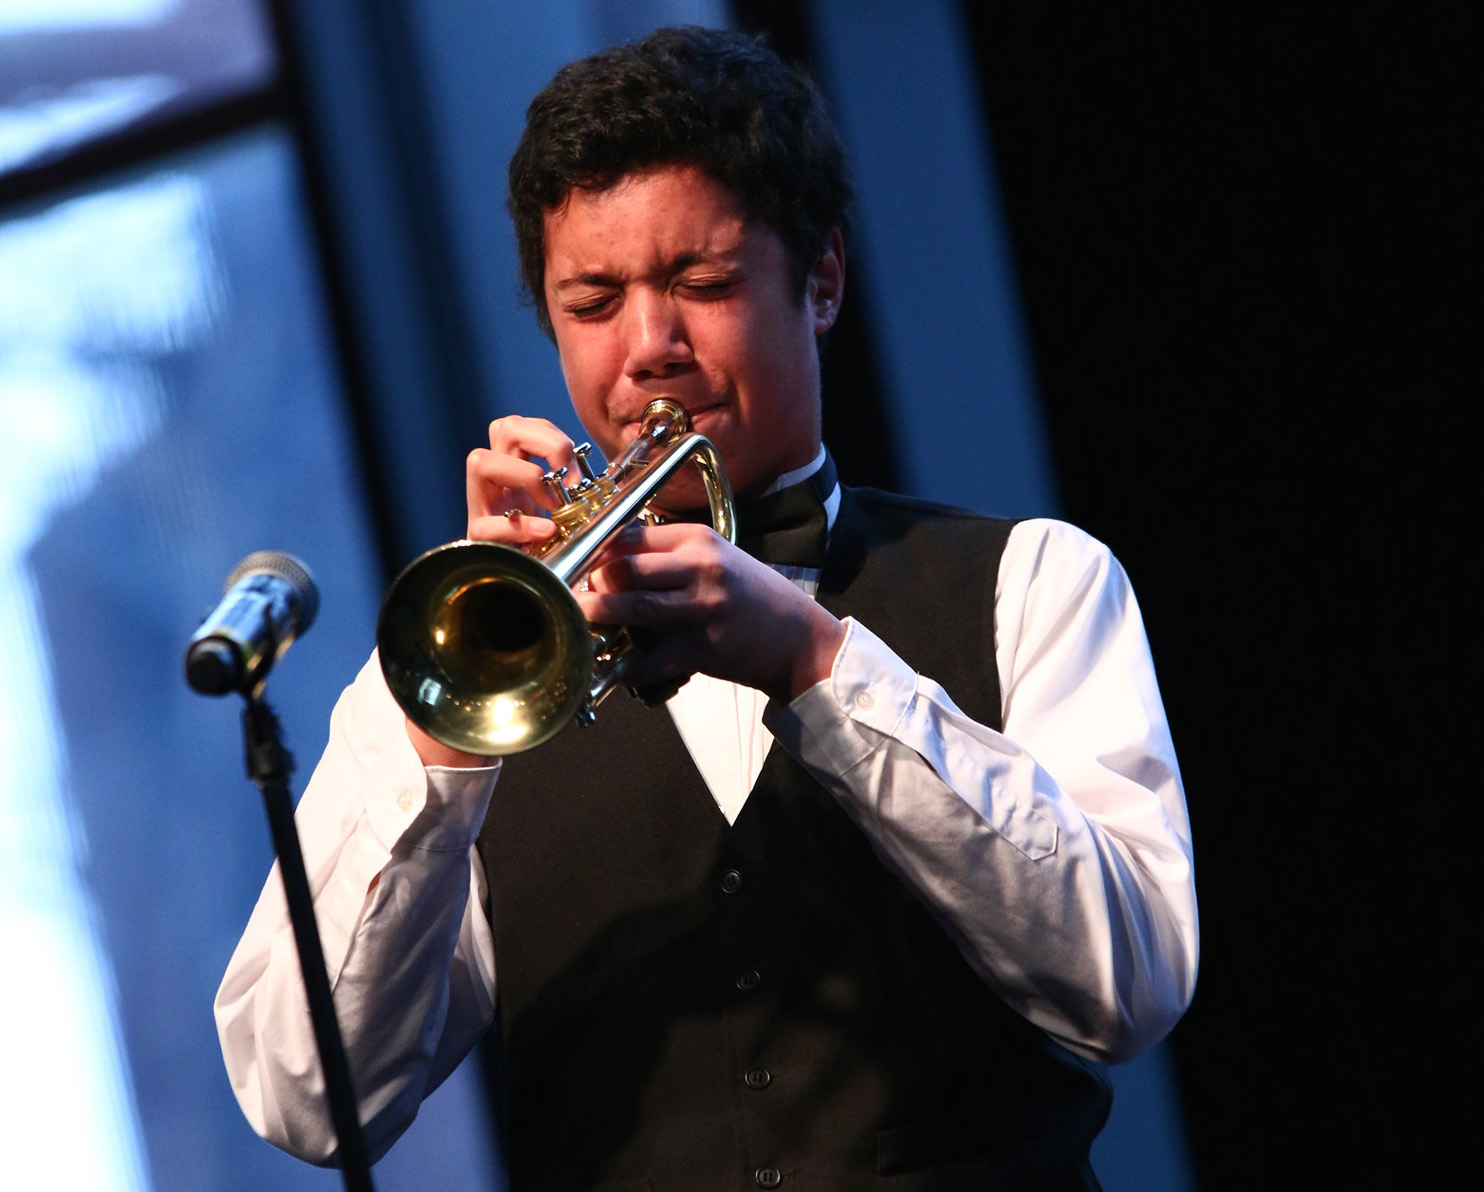 The fifth annual SteelStacks High School Jazz Band Showcase will be held Feb. 14 through March 20 at Musikfest Cafe in Bethlehem.  (Courtesy Photo)